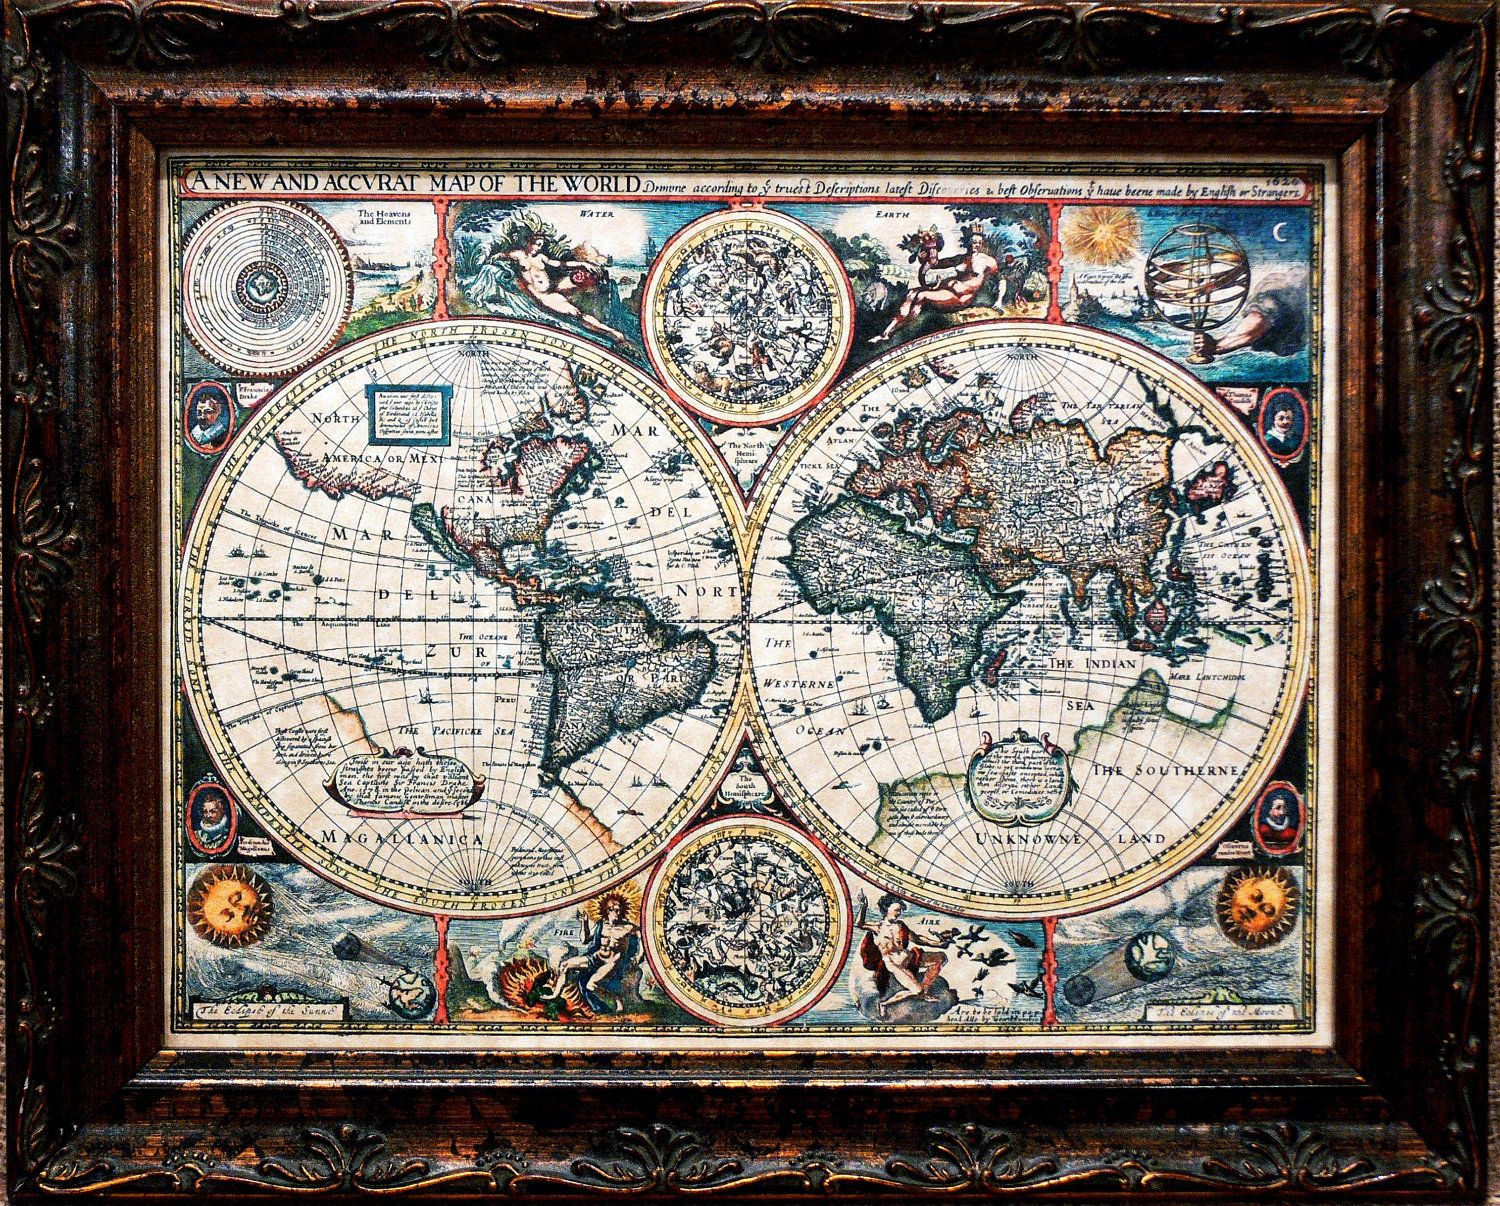 A New And Accvrat Map Of The World 1626.Double Hemisphere World Map Print Of A 1626 Map On Parchment Paper